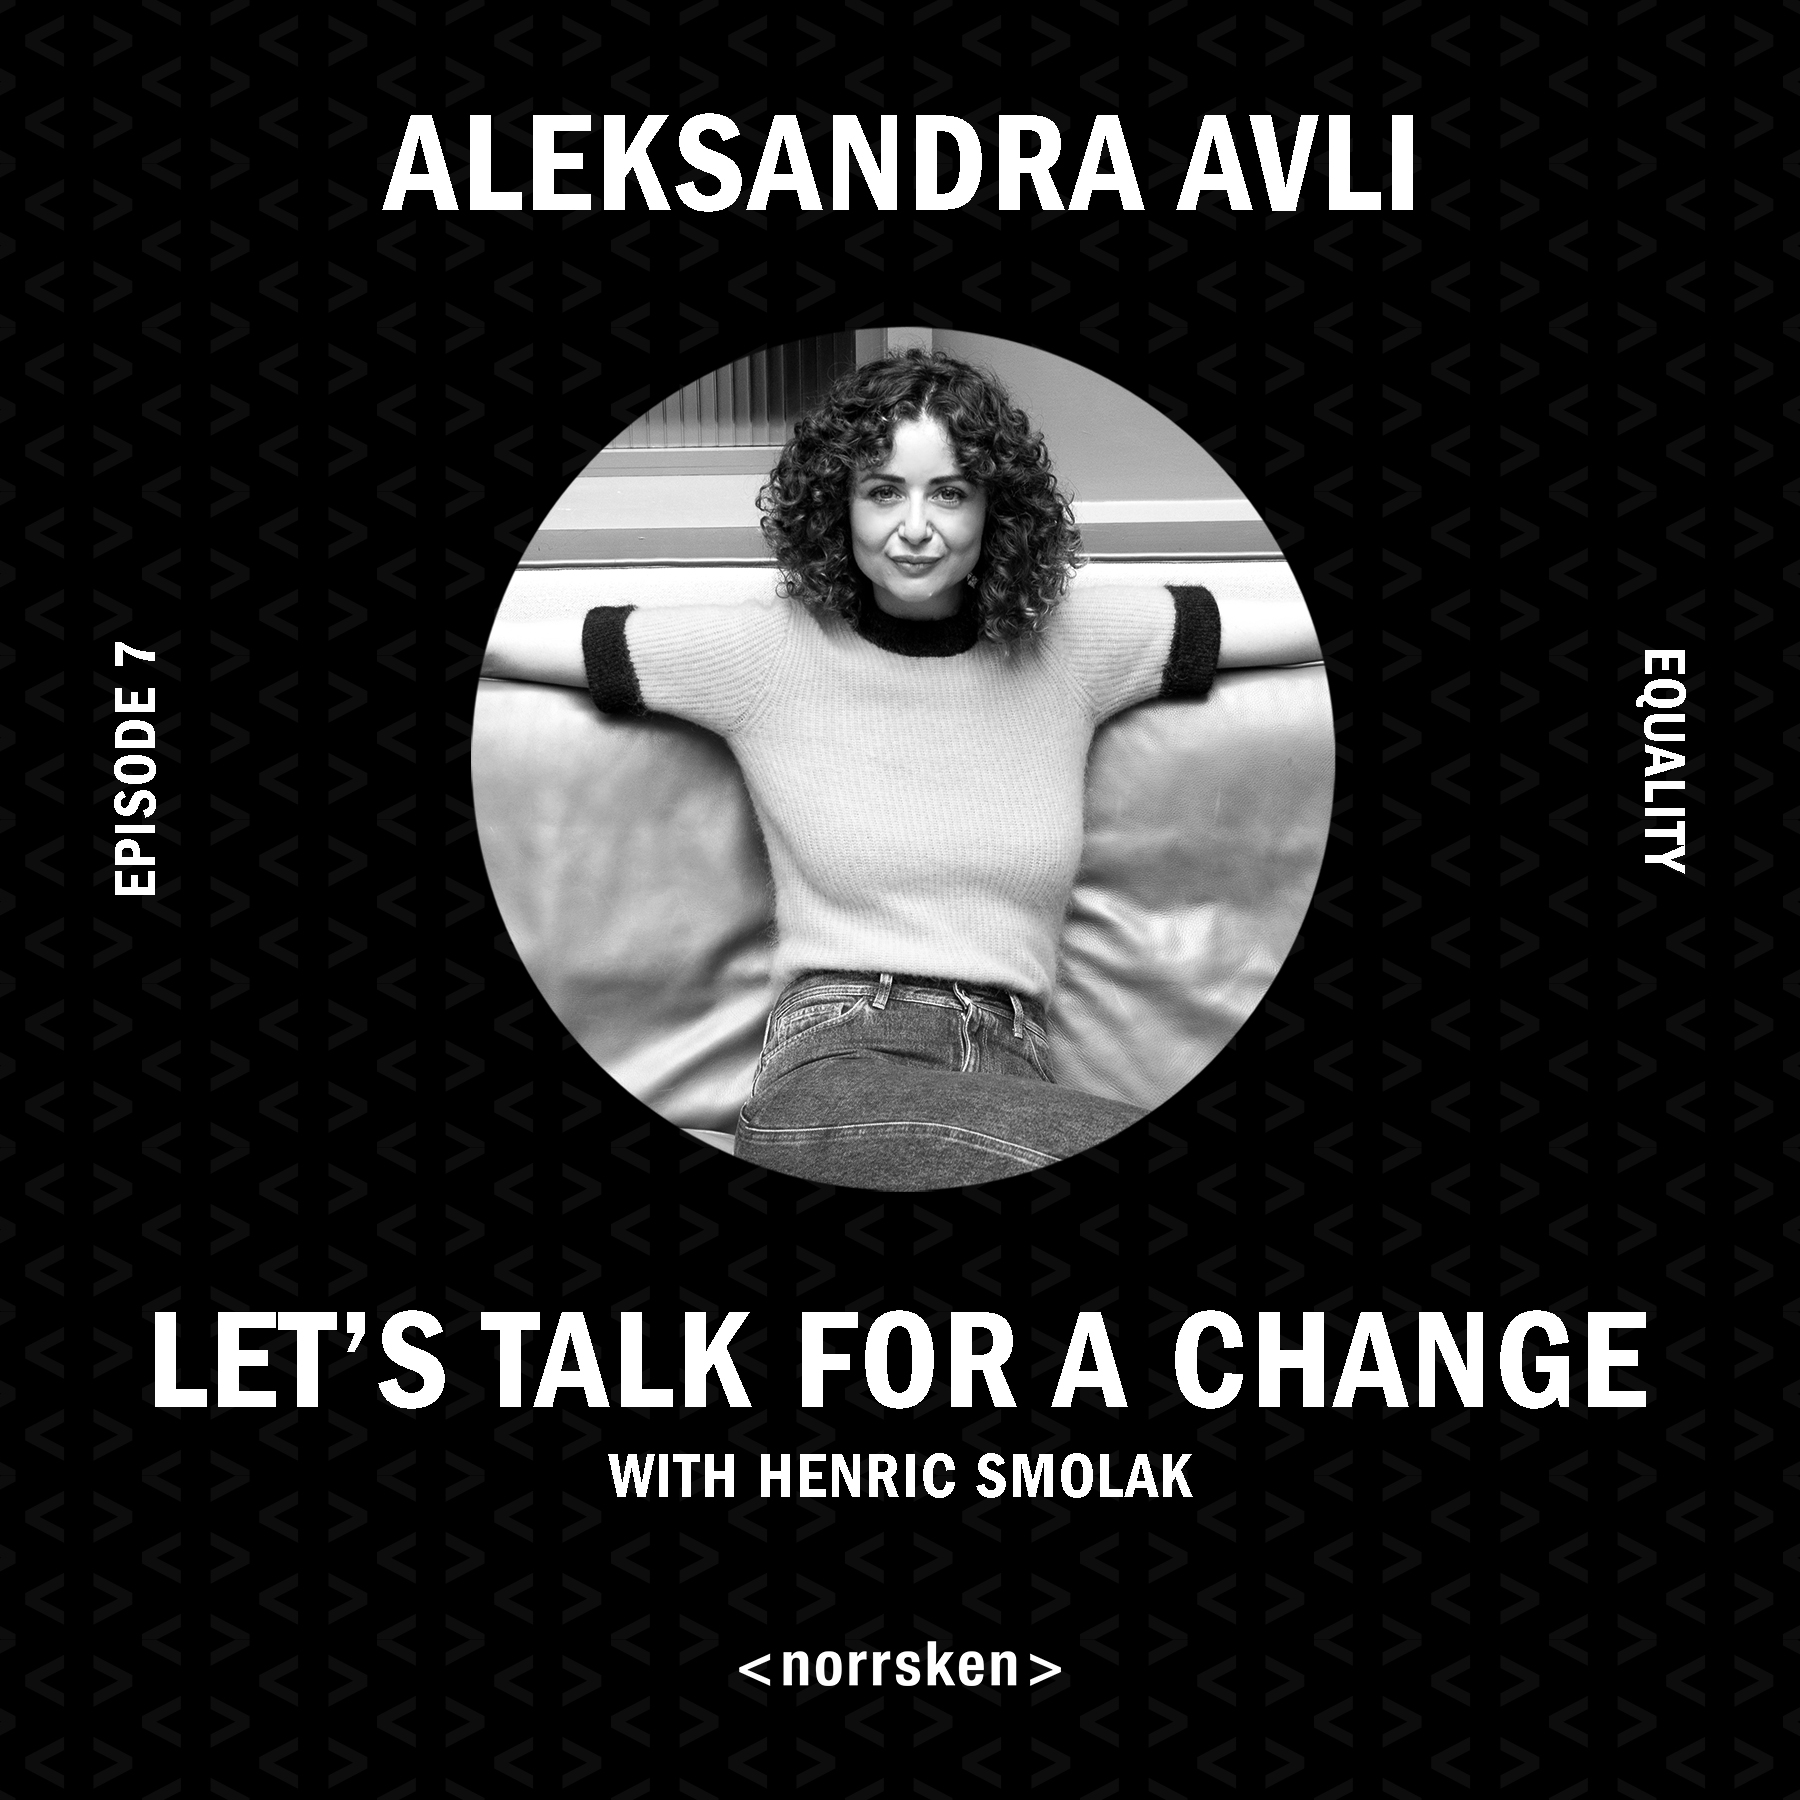 Let's talk for a change